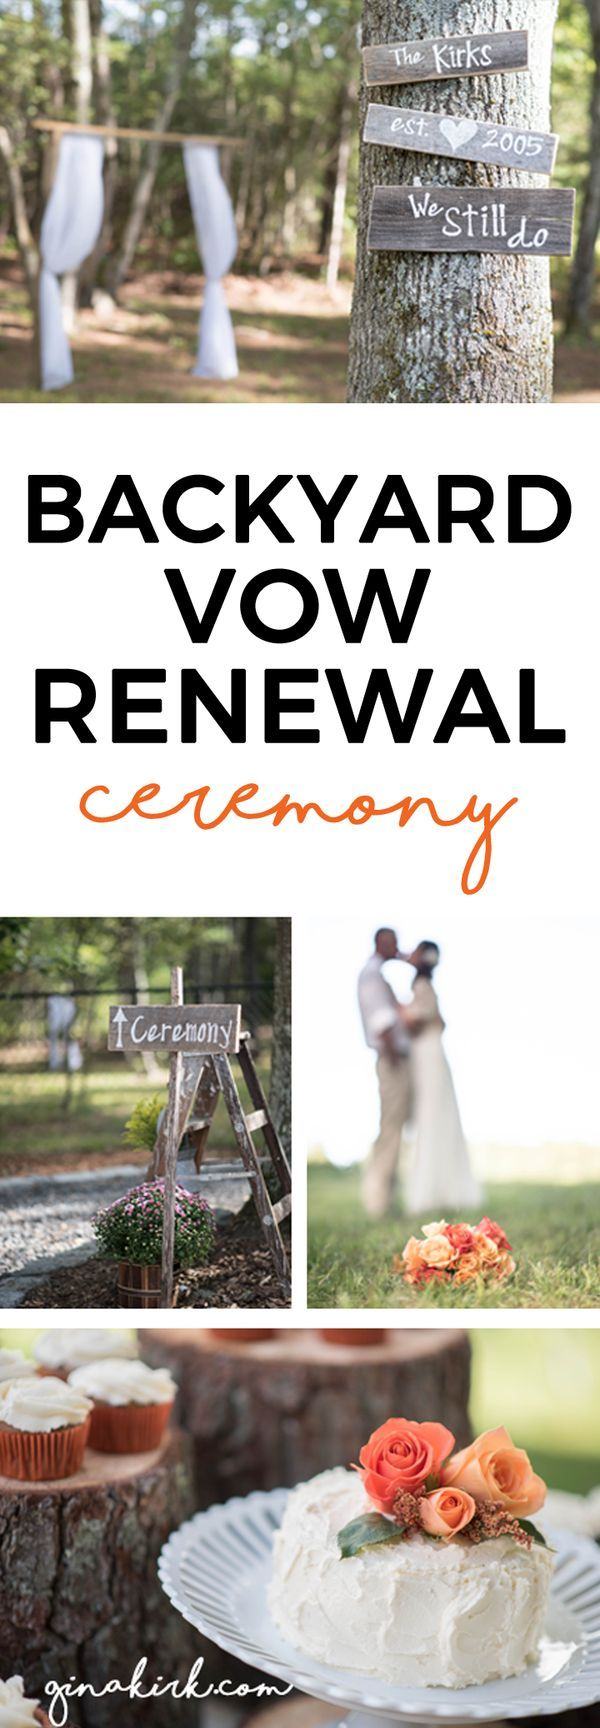 wedding renewal invitation ideas%0A Beautiful    Unique Ideas for Vow Renewal Ceremony   Wedding Anniversary  Ideas   Pinterest      years  Vow renewal ceremony and Photography